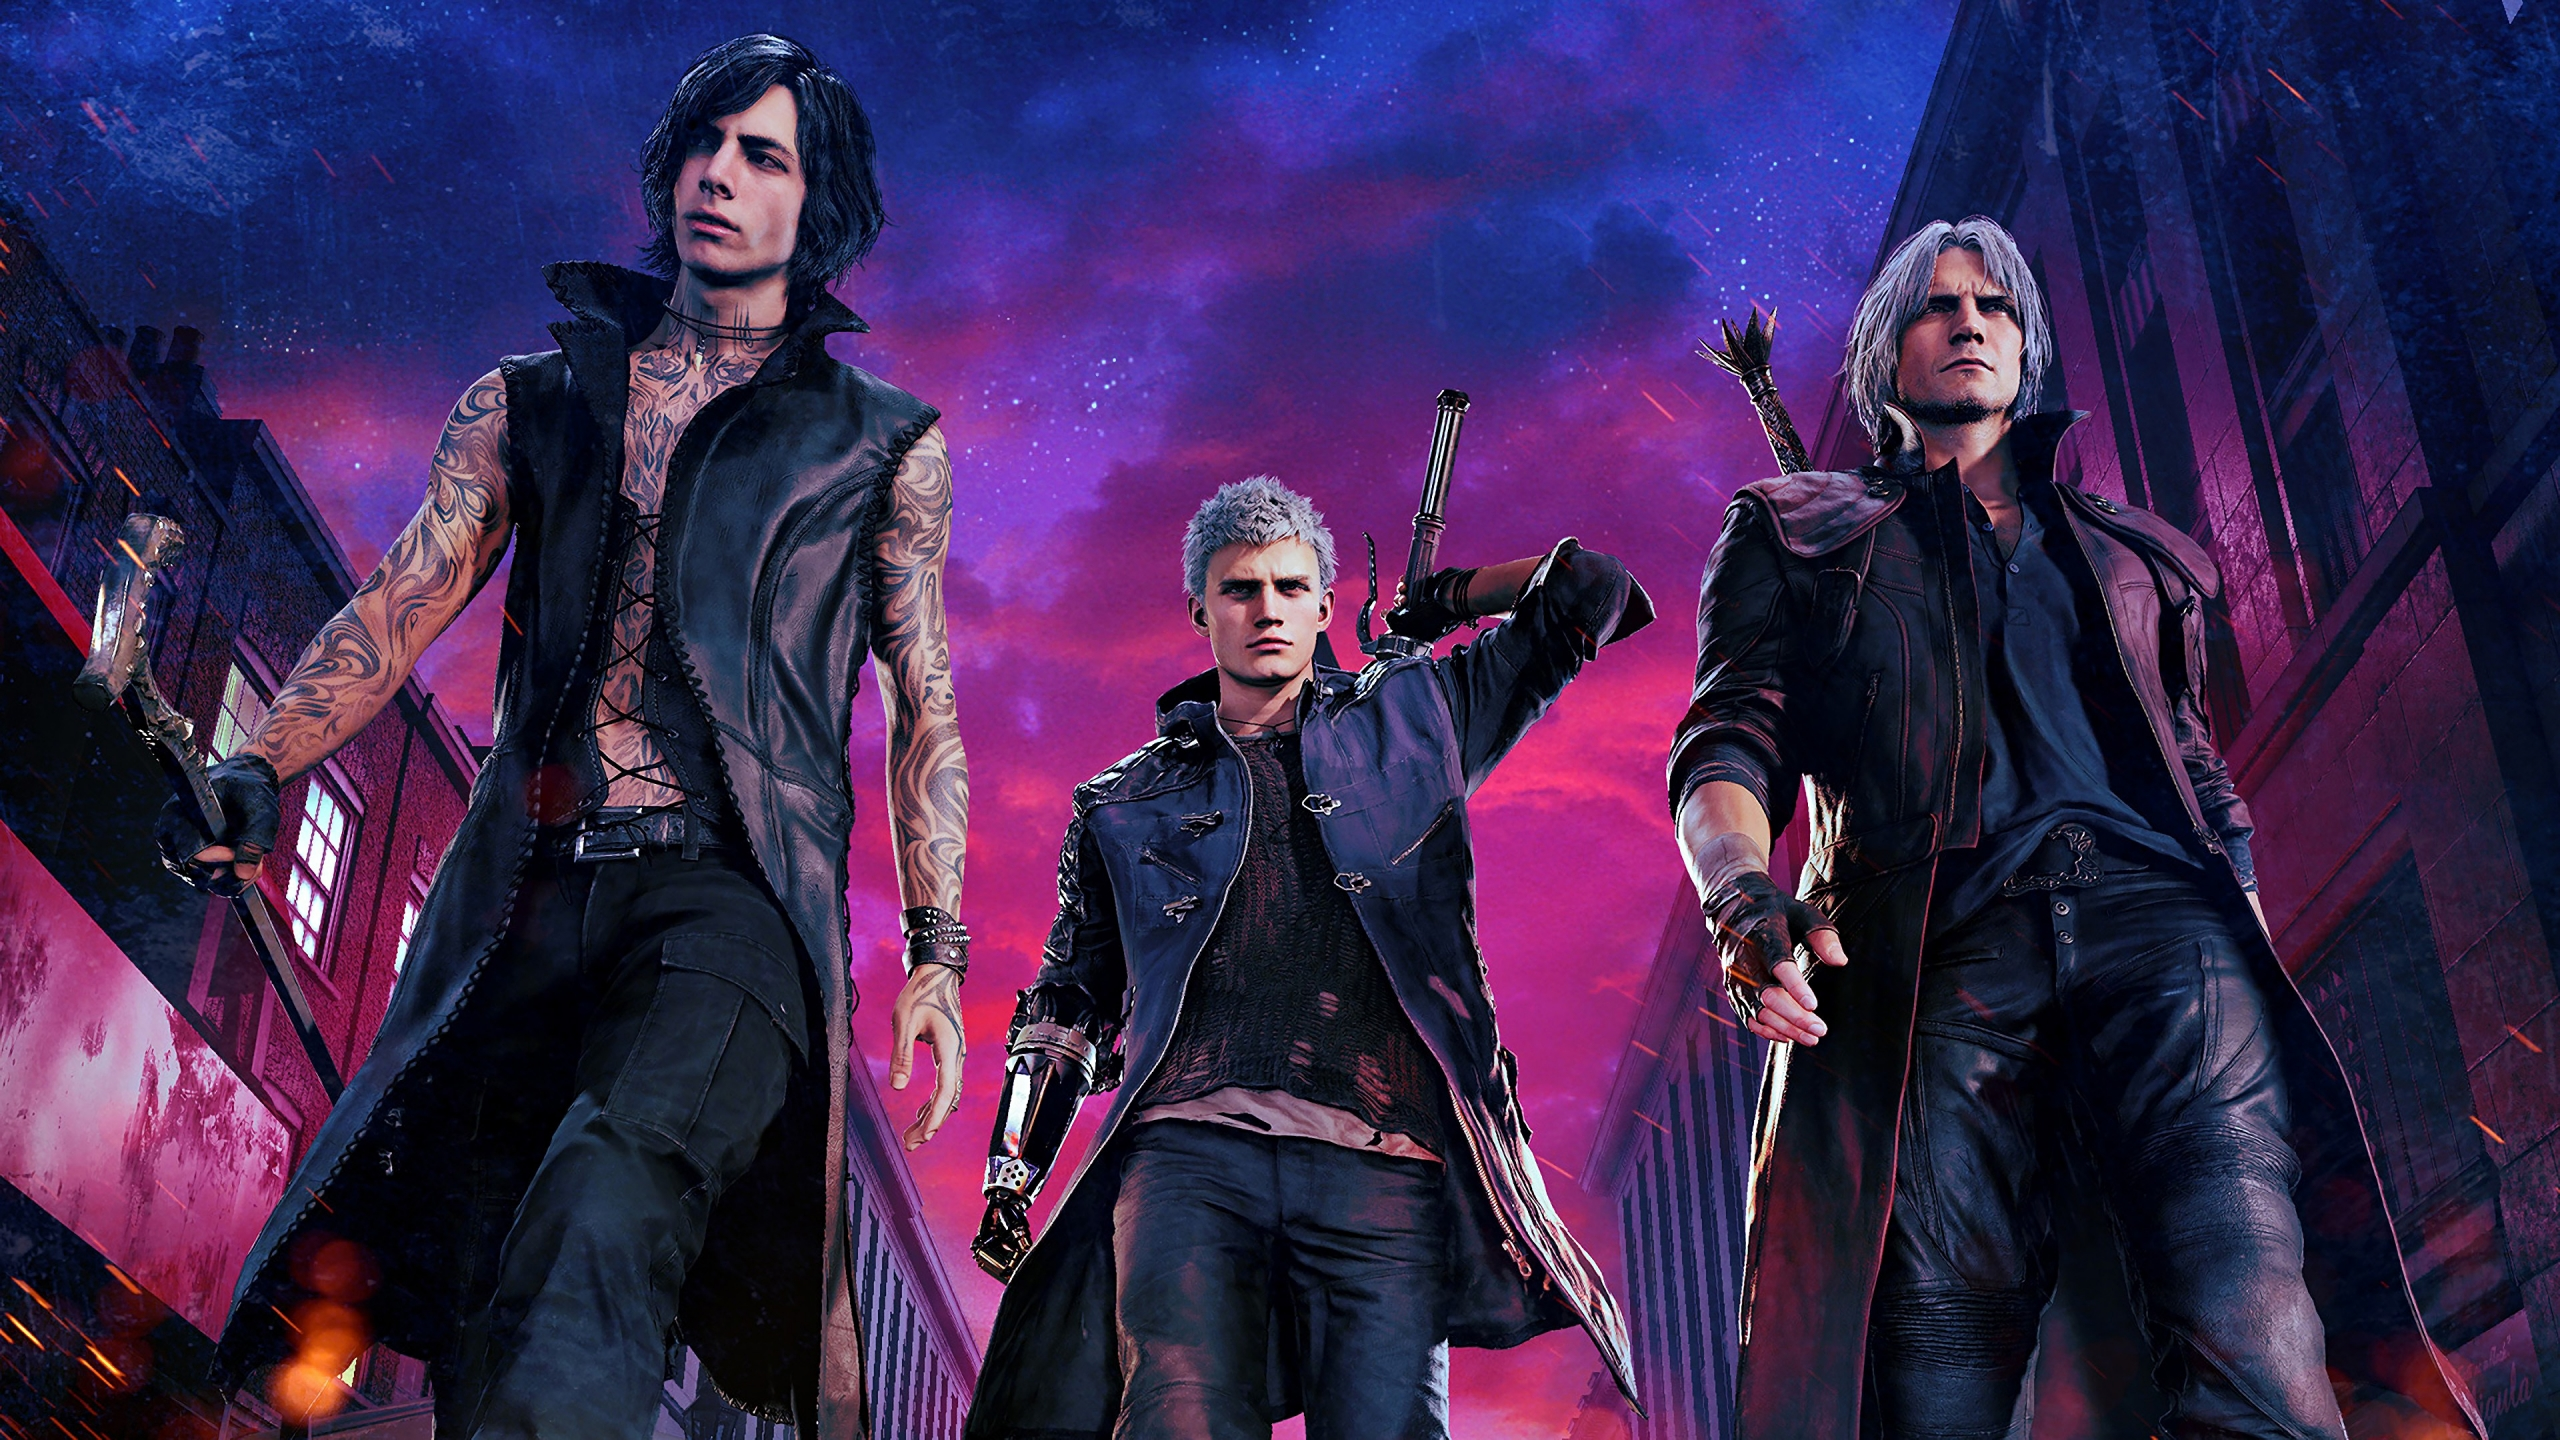 V Nero And Dante From Devil May Cry 5 Wallpaper 4k Ultra Hd Id 4321